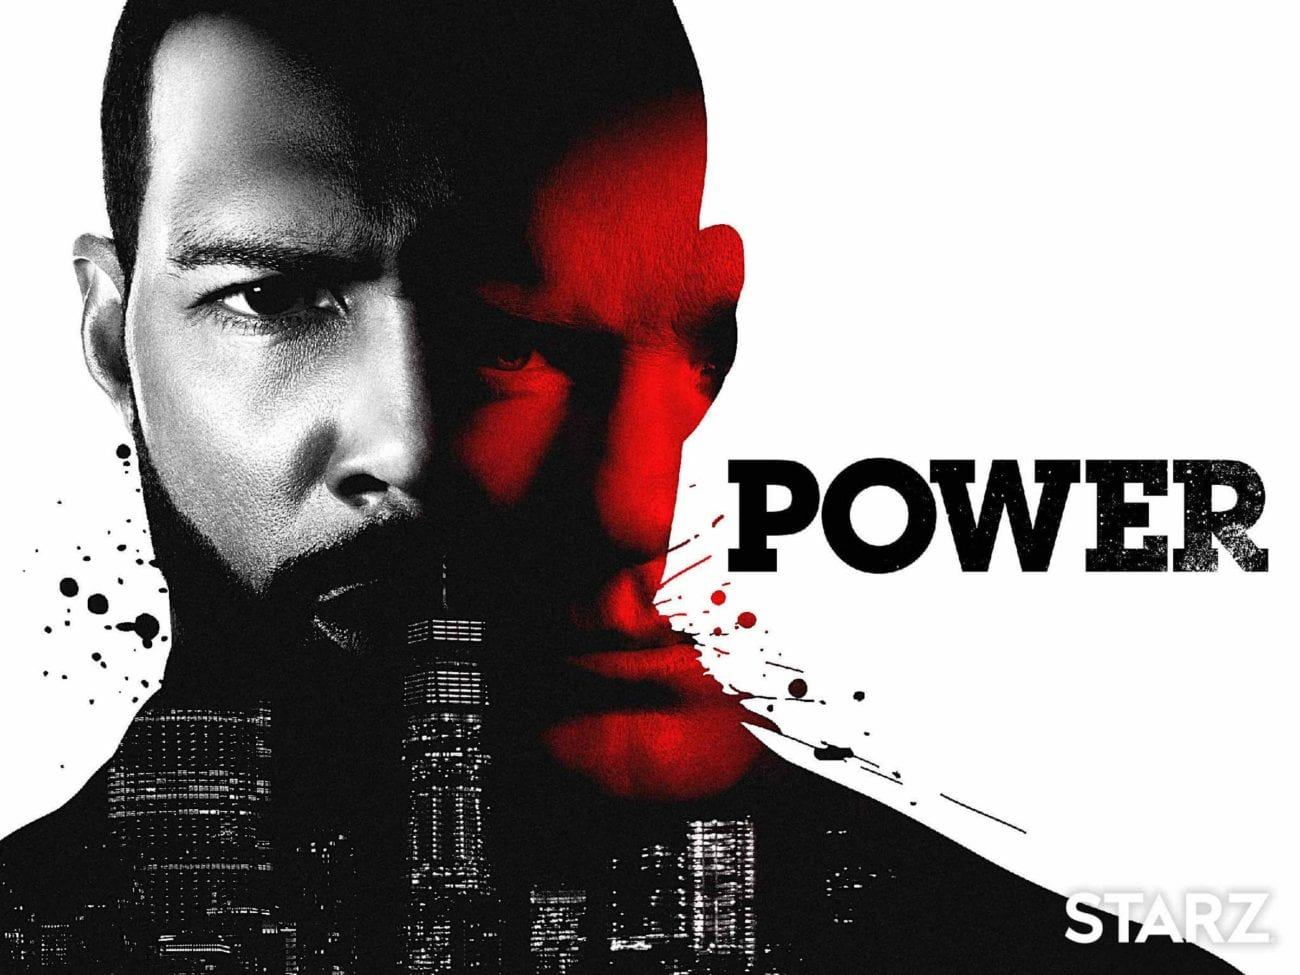 Even if the end is coming, 'Power' still has a lot more action coming. Here's why you should catch up on 'Power' now on Starz.